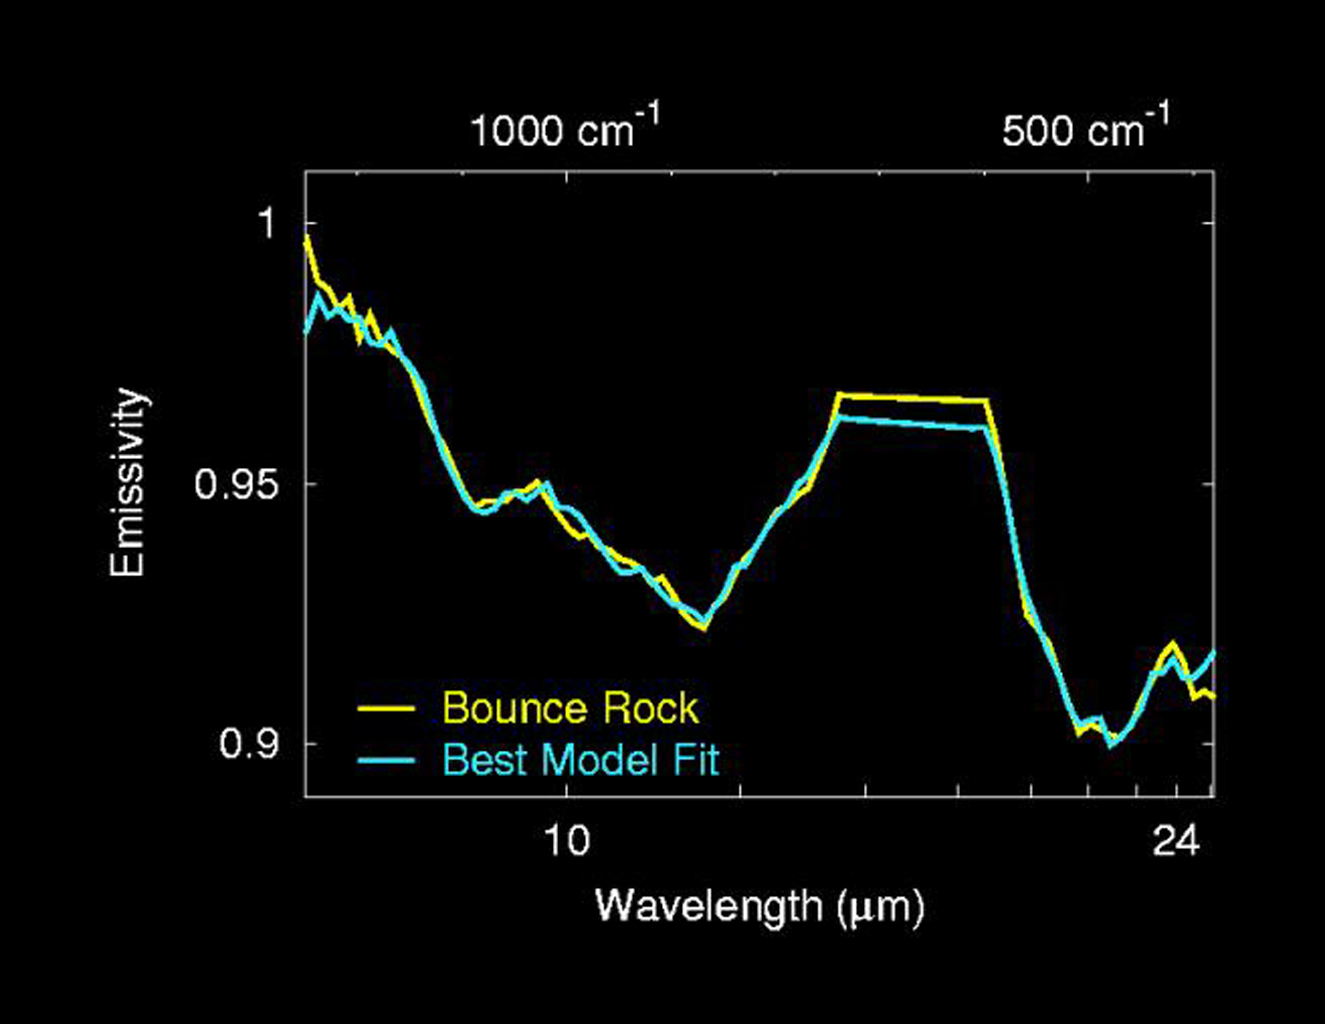 The mineralogy of 'Bounce' rock was determined by fitting spectra from laboratory minerals to the spectrum of Bounce taken by NASA's Mars Exploration Rover Opportunity including pyroxene, plagioclase and olivine commonly found in basaltic volcanic rocks.